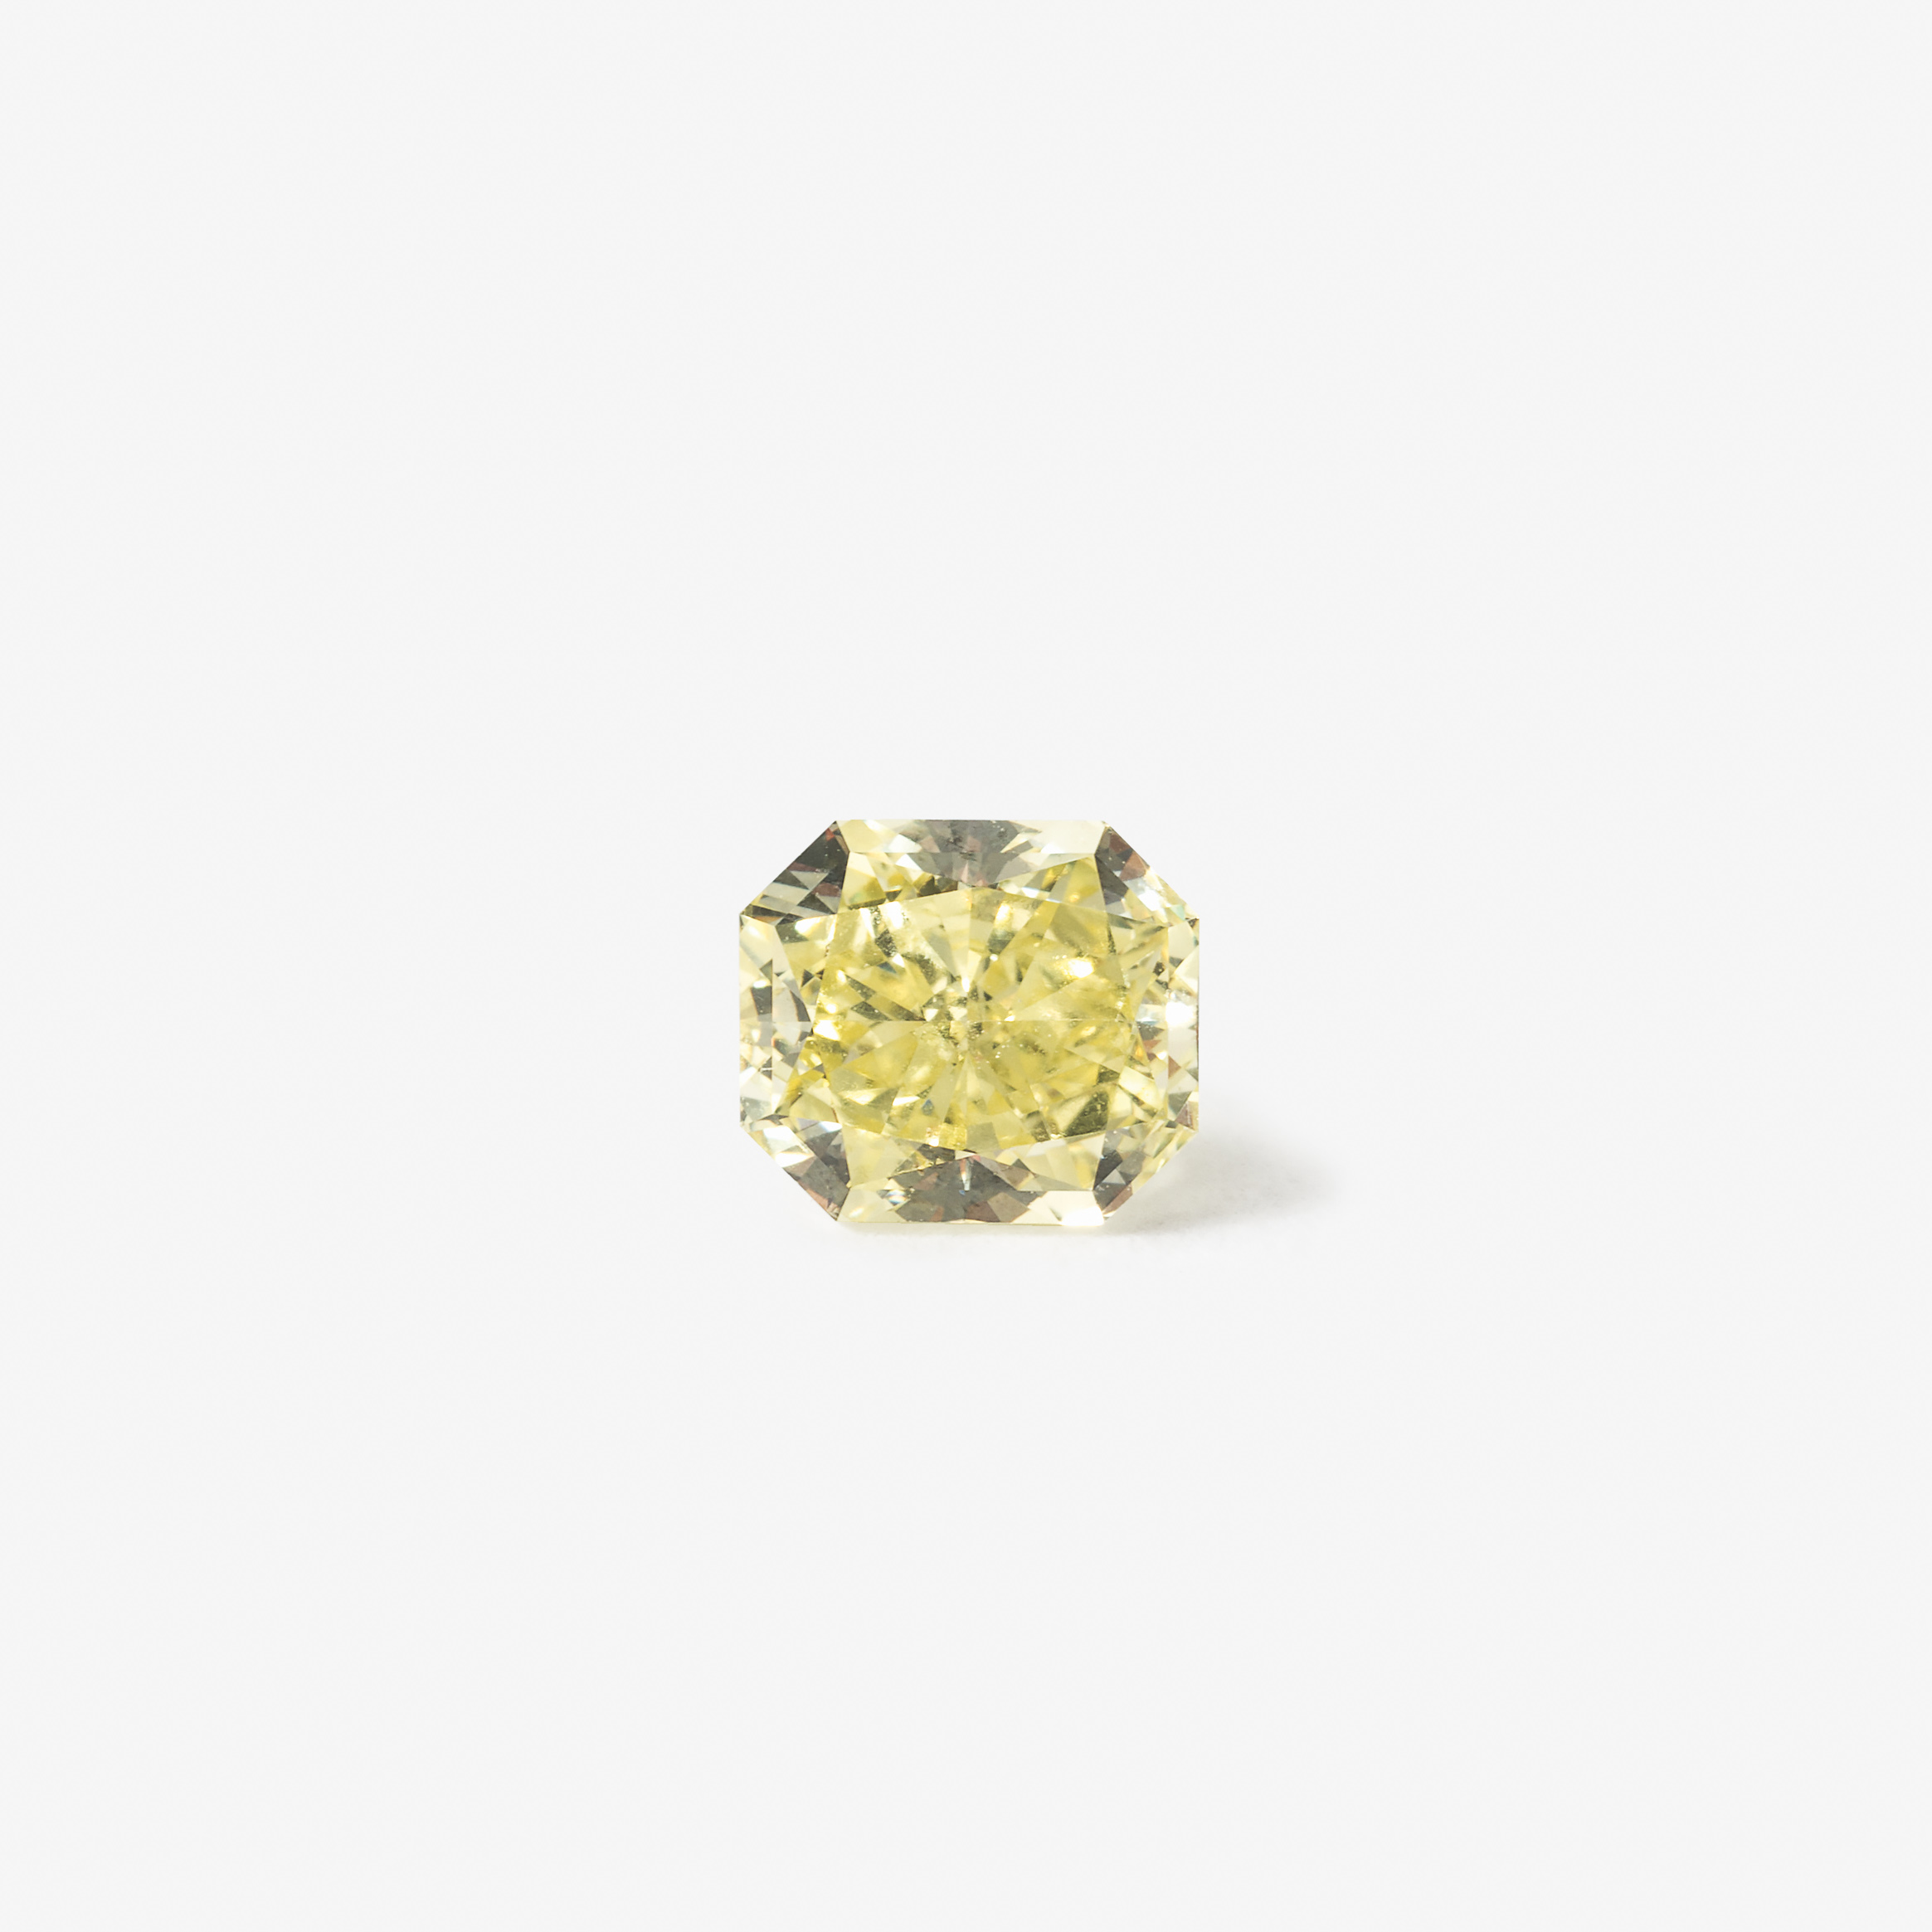 A rectangular diamond weighing 1.15 carat With GIA certificate: Cut-Cornered Rectangular Modified Brilliant, Natural, Fancy Intense Yellow, Even, VSI, numbered GIA 2155133729, 20 Juni 2015 Estimate:£5 300 - 7 000 (€ 6 000 - 8 000)